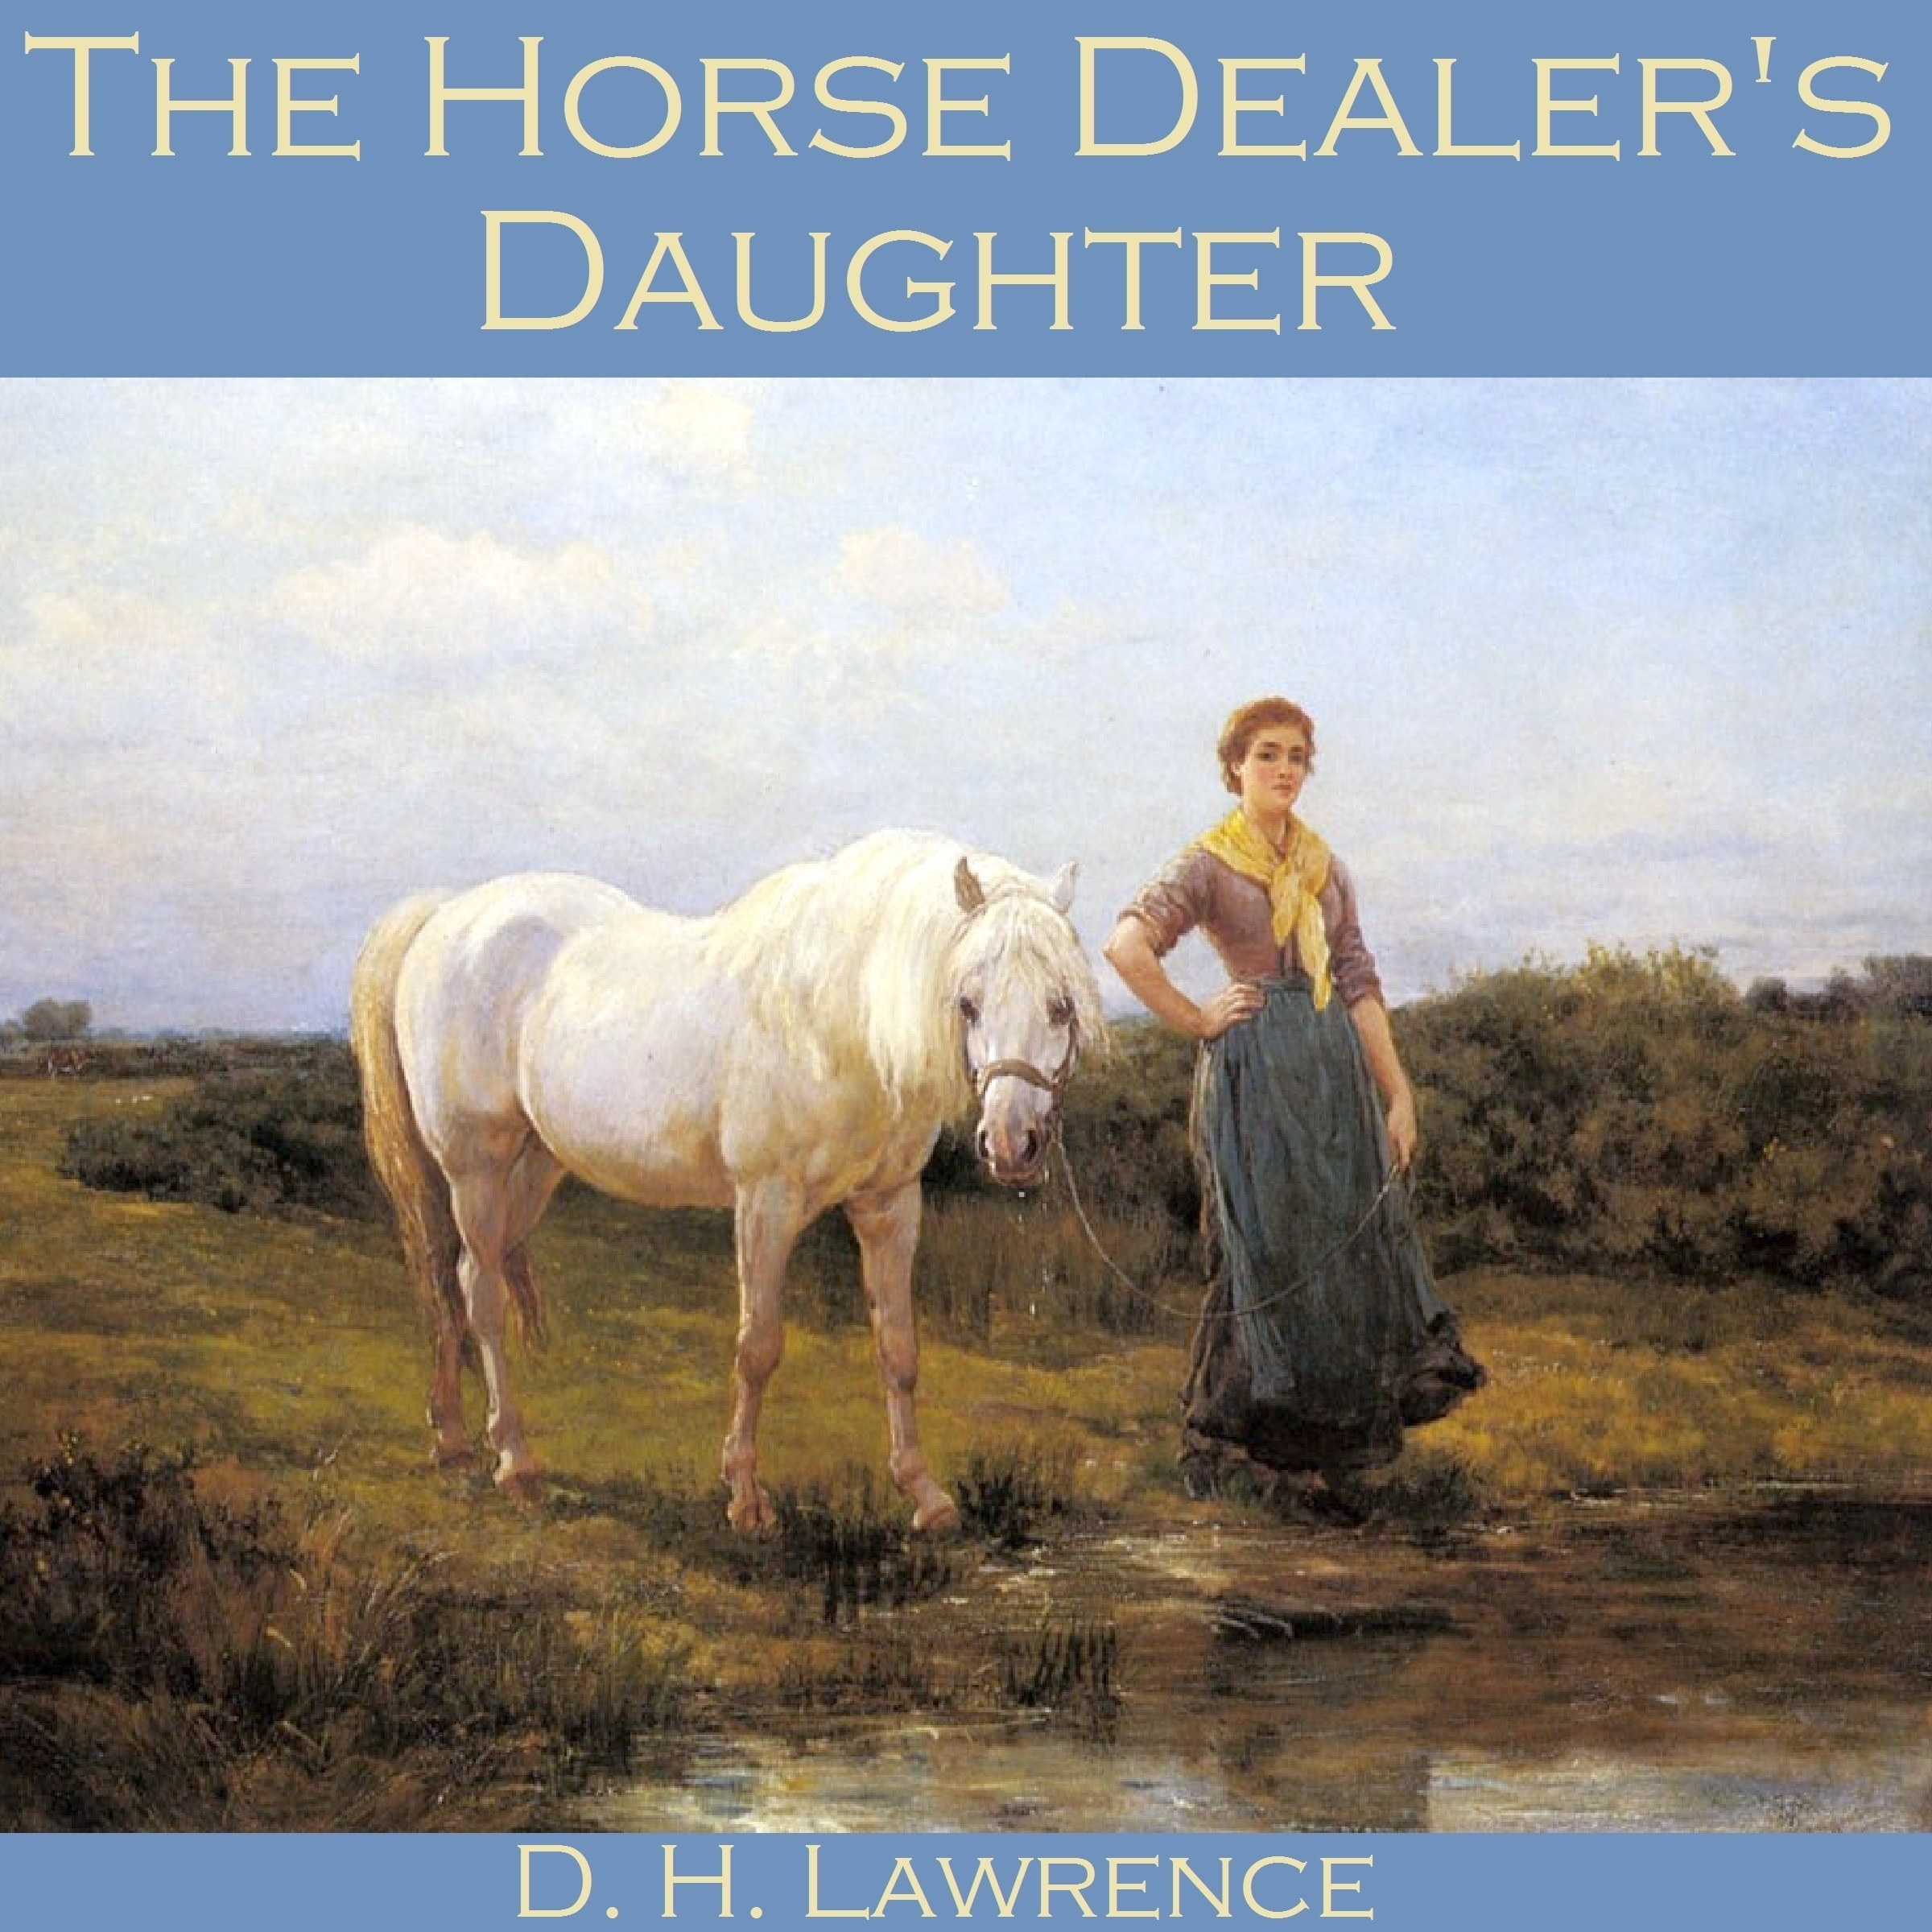 the extremes when dealing with poverty in the horse dealers daughter Check out our new website for more incredible documentaries: hd and ad-free   35 million children are growing up in poverty in the uk.